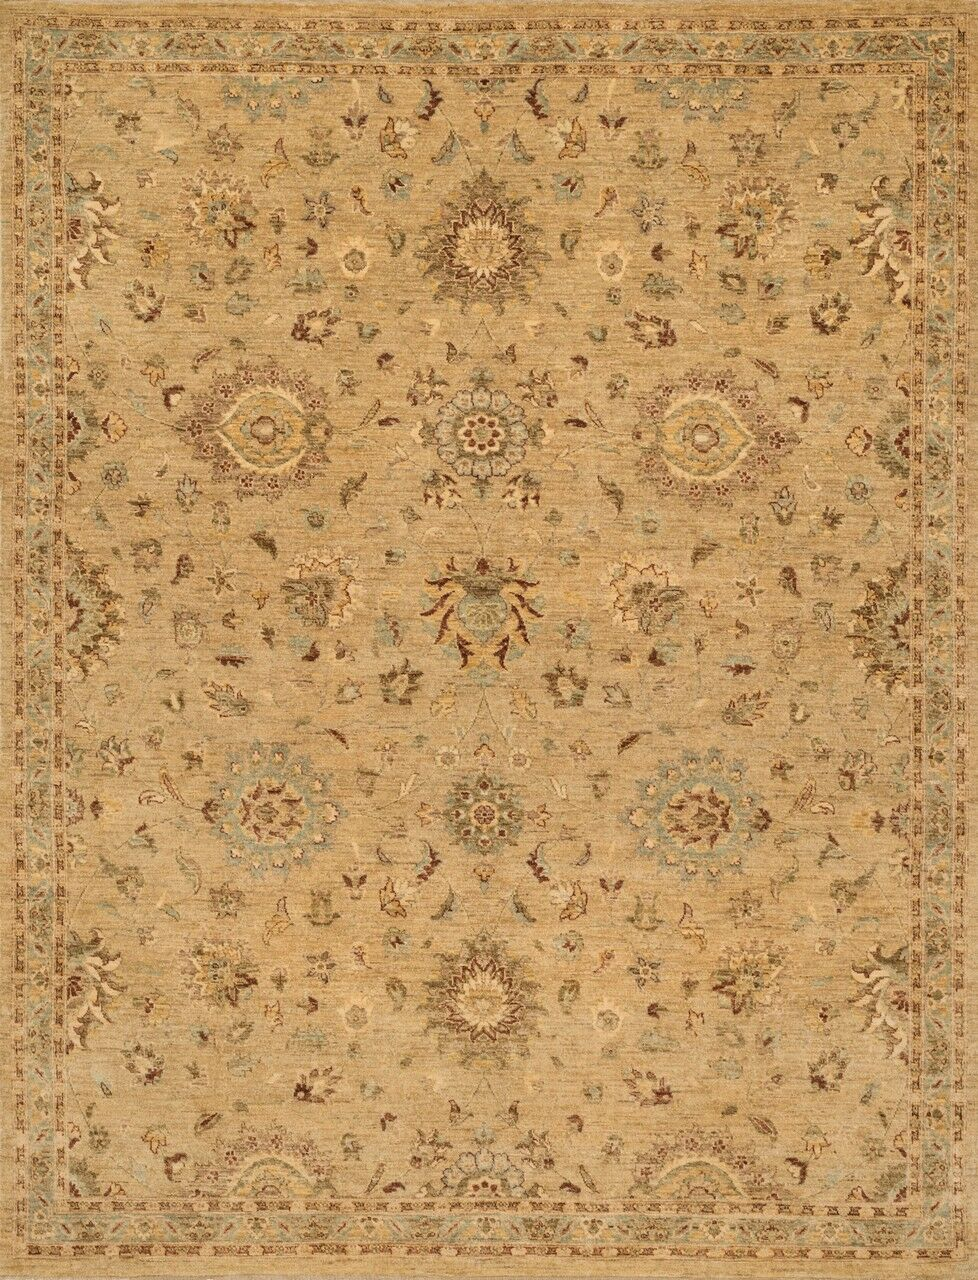 Durden Hand-Knotted Brown Area Rug Rug Size: Rectangle 7'9